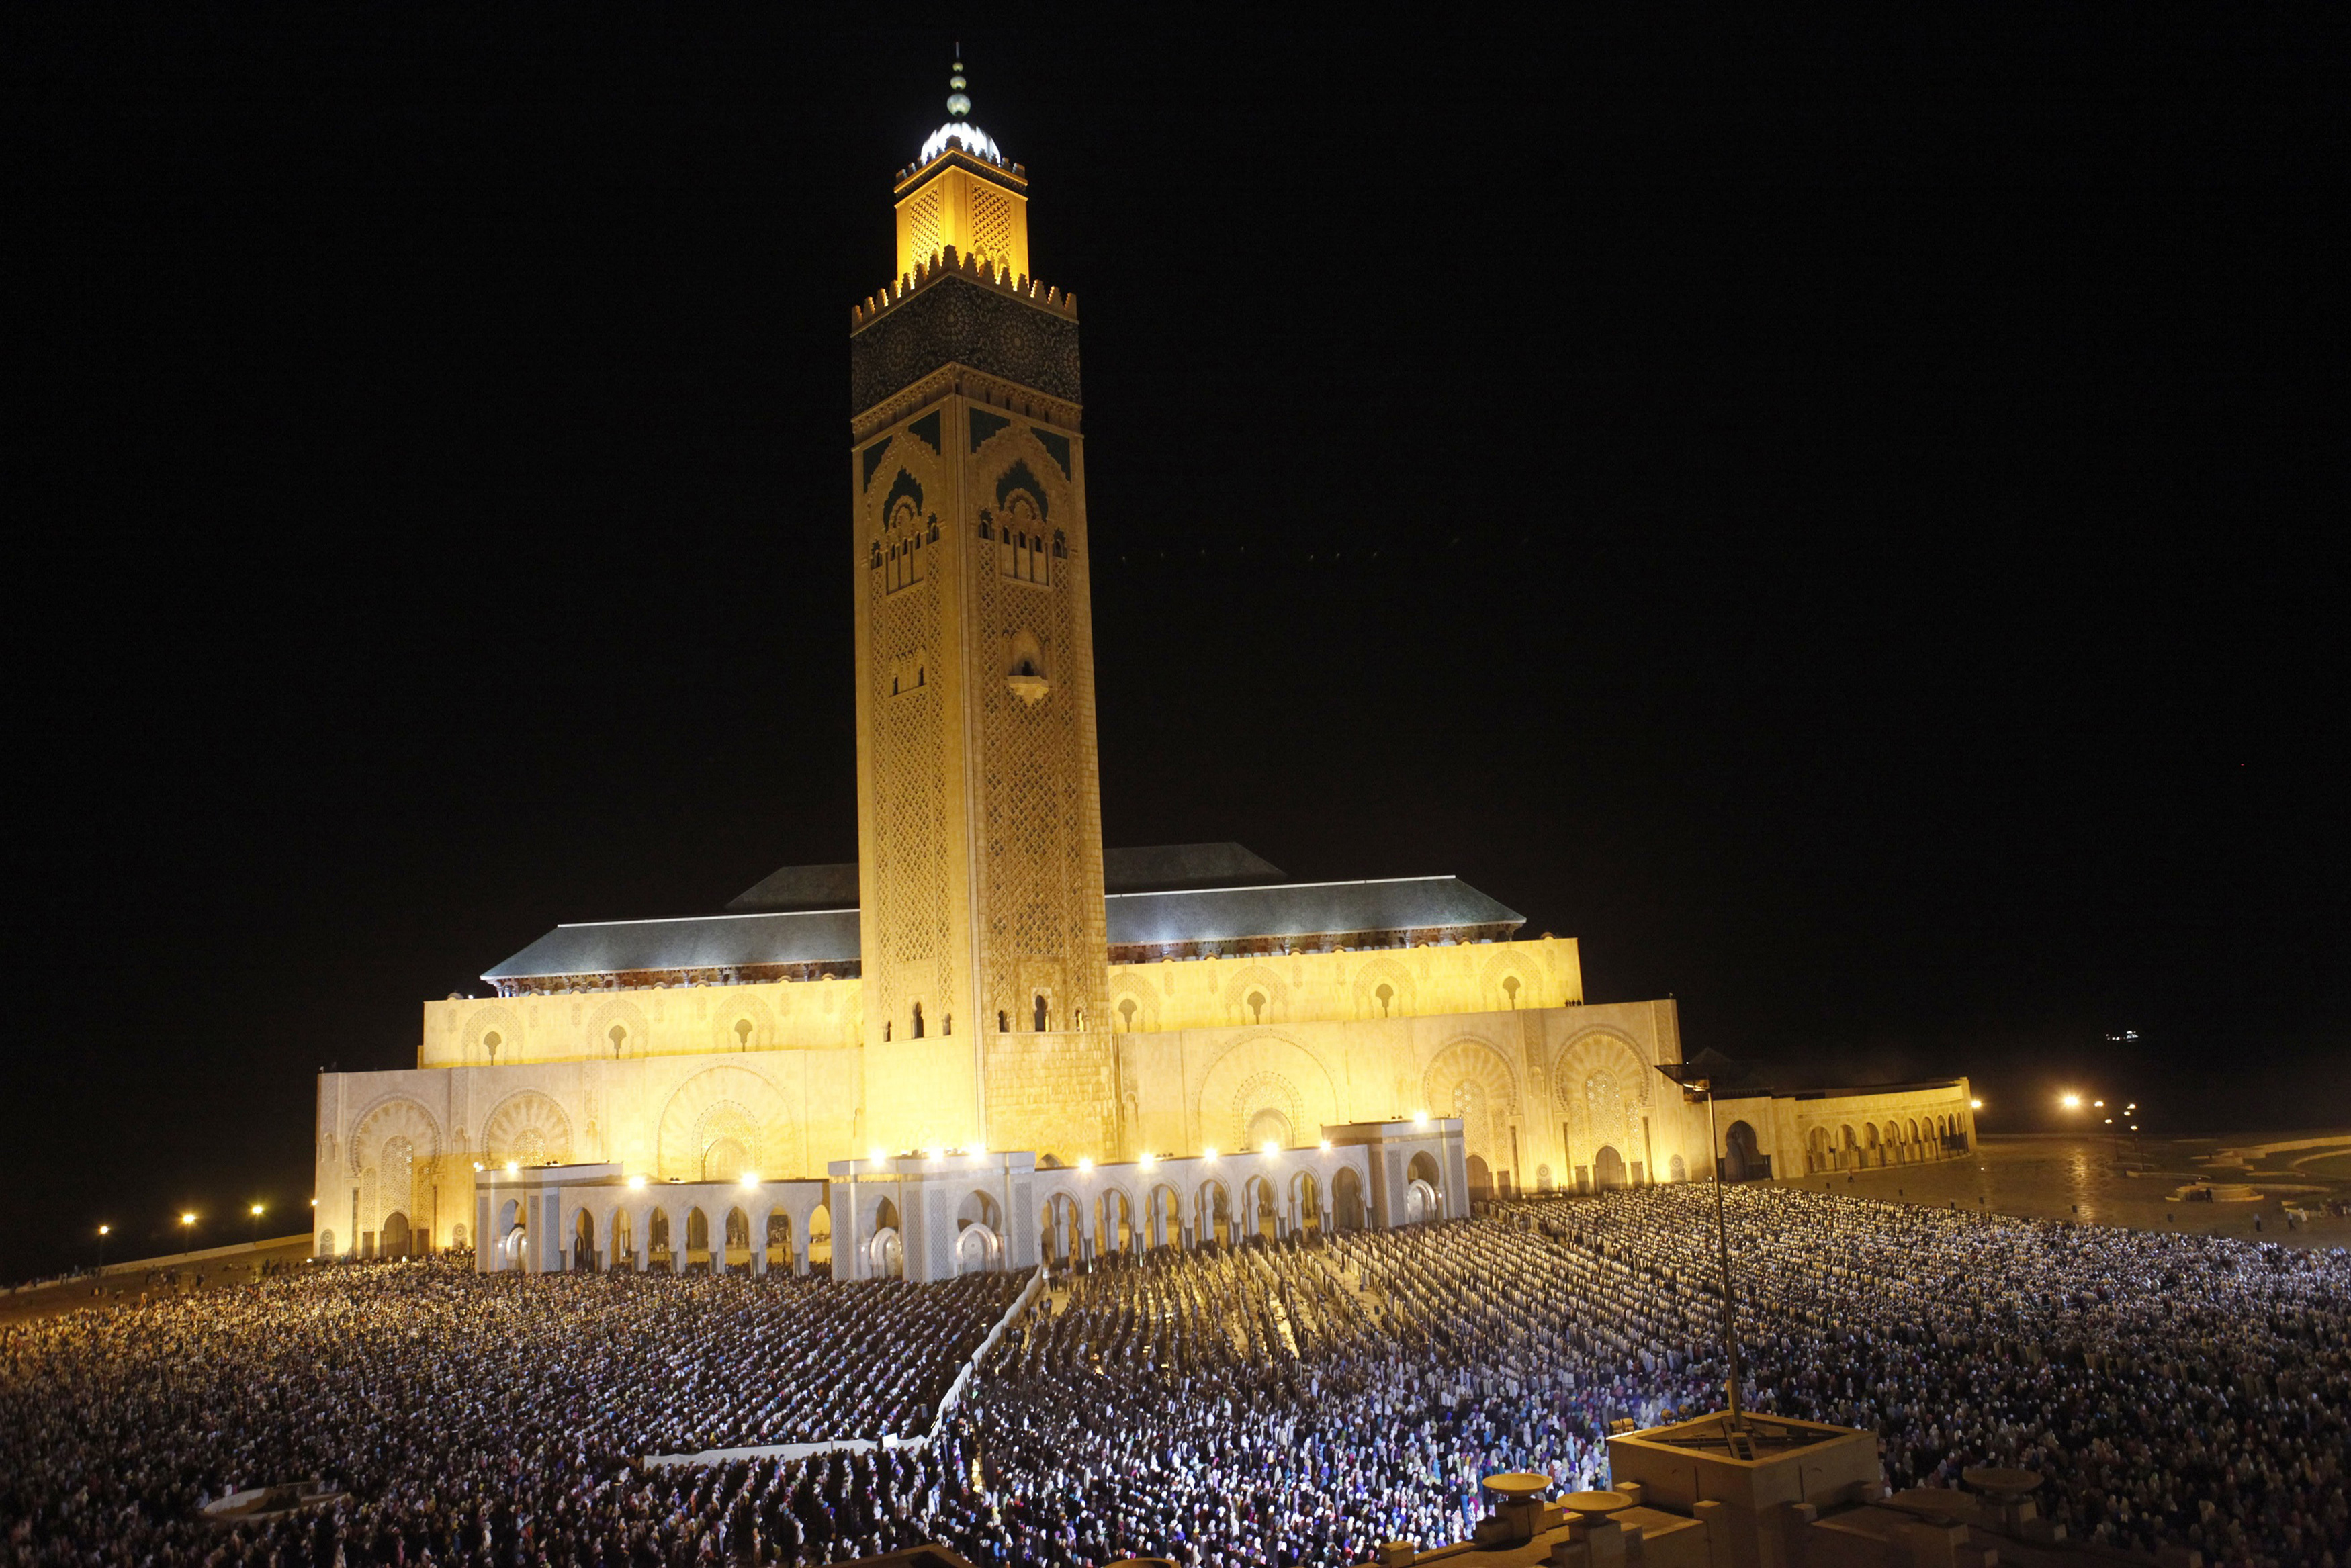 The faithful pray on the esplanade of the Hassan II Mosque in Casablanca, Morocco.